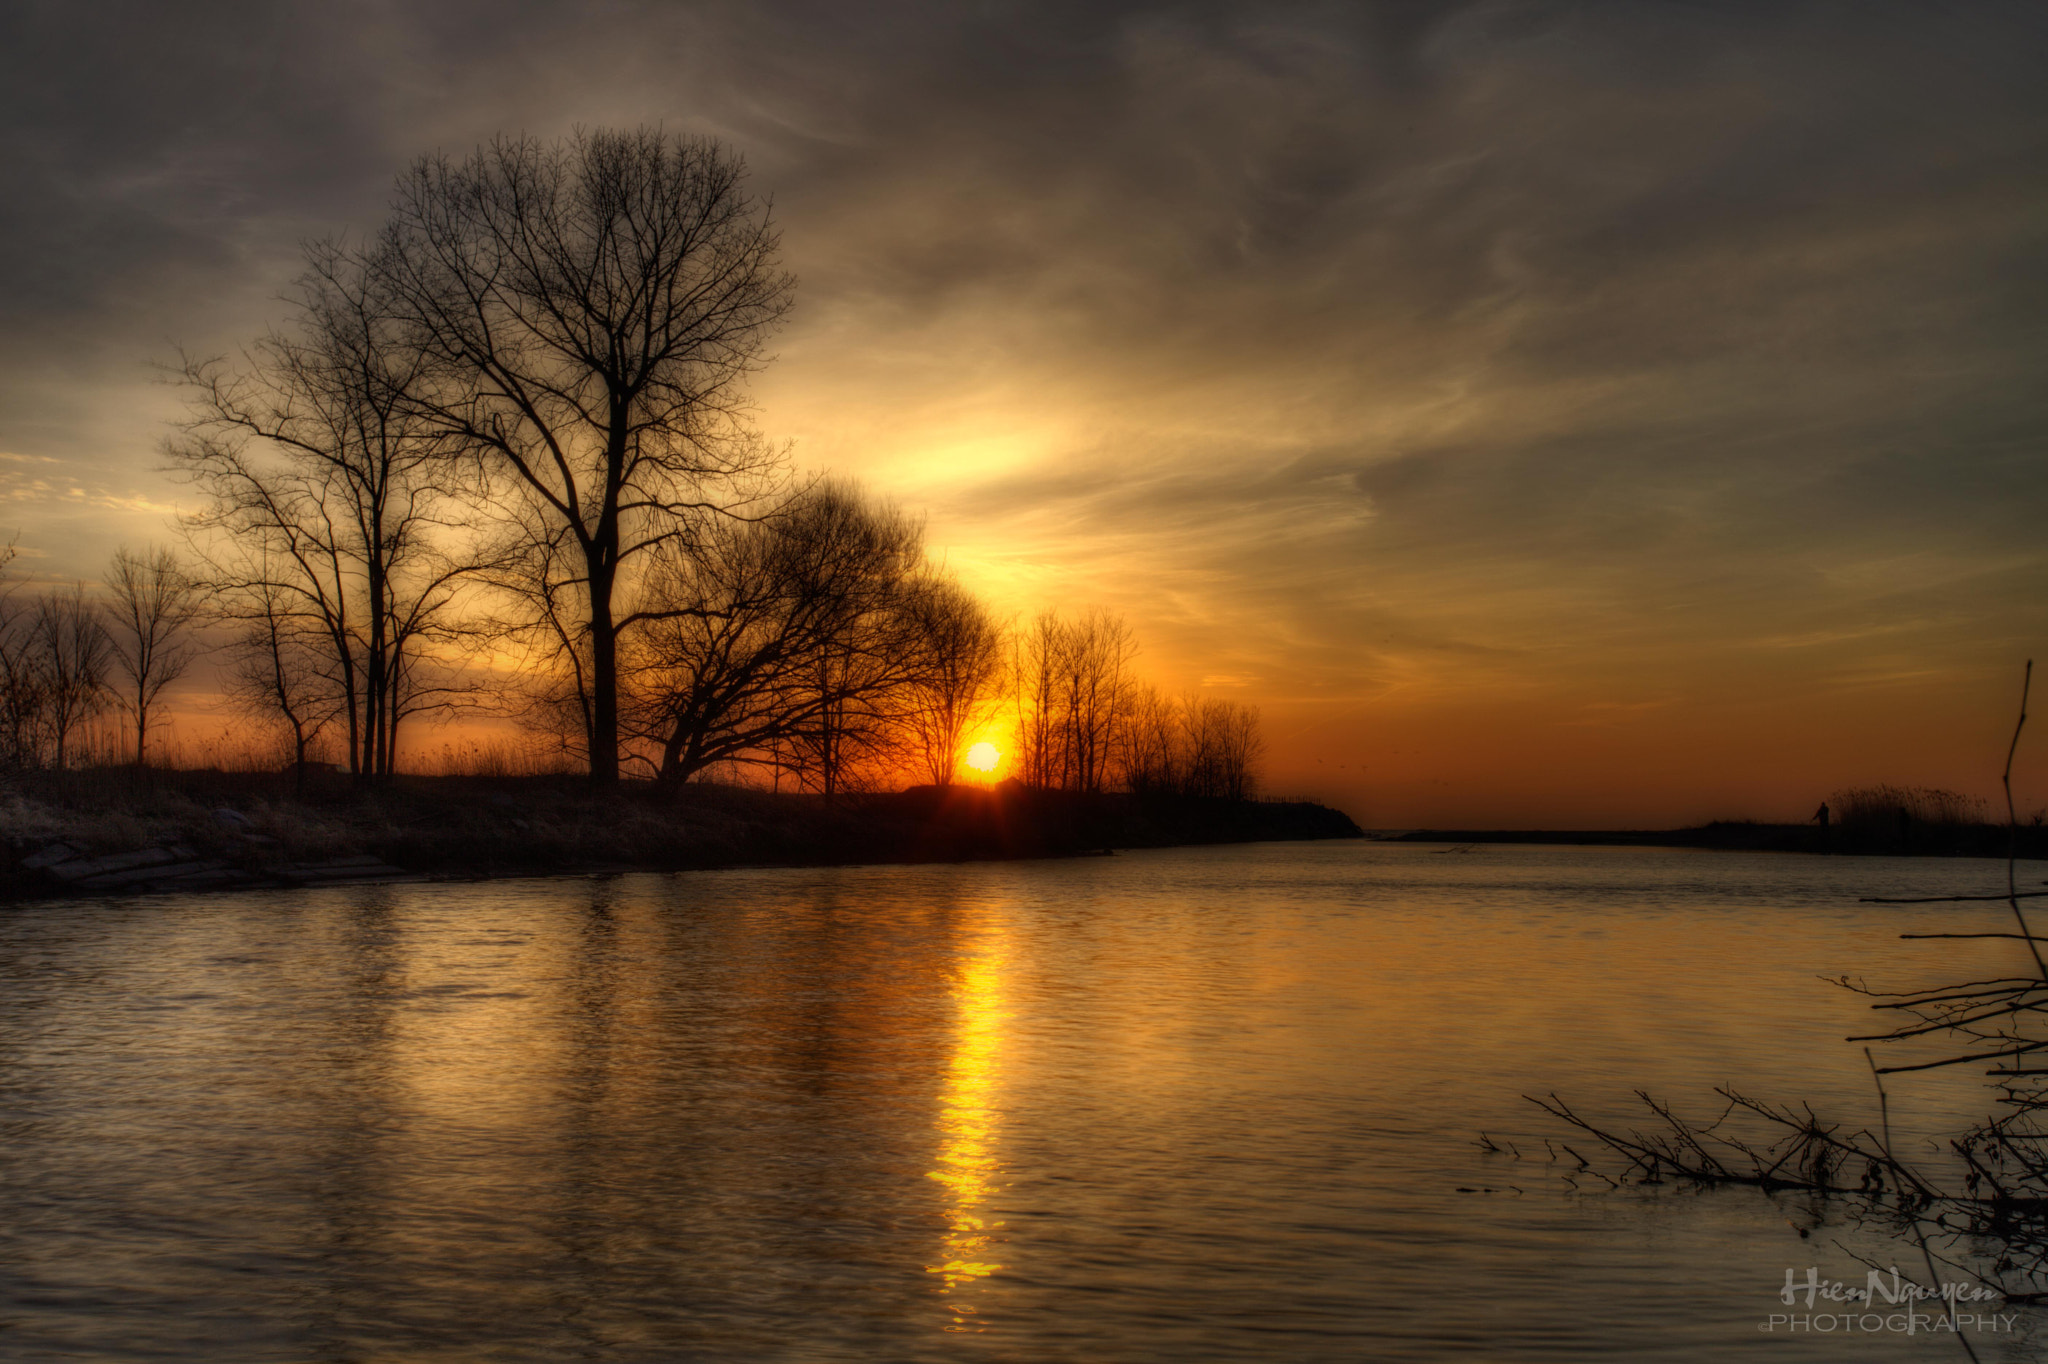 Photograph The Sunrise by Hien Nguyen on 500px